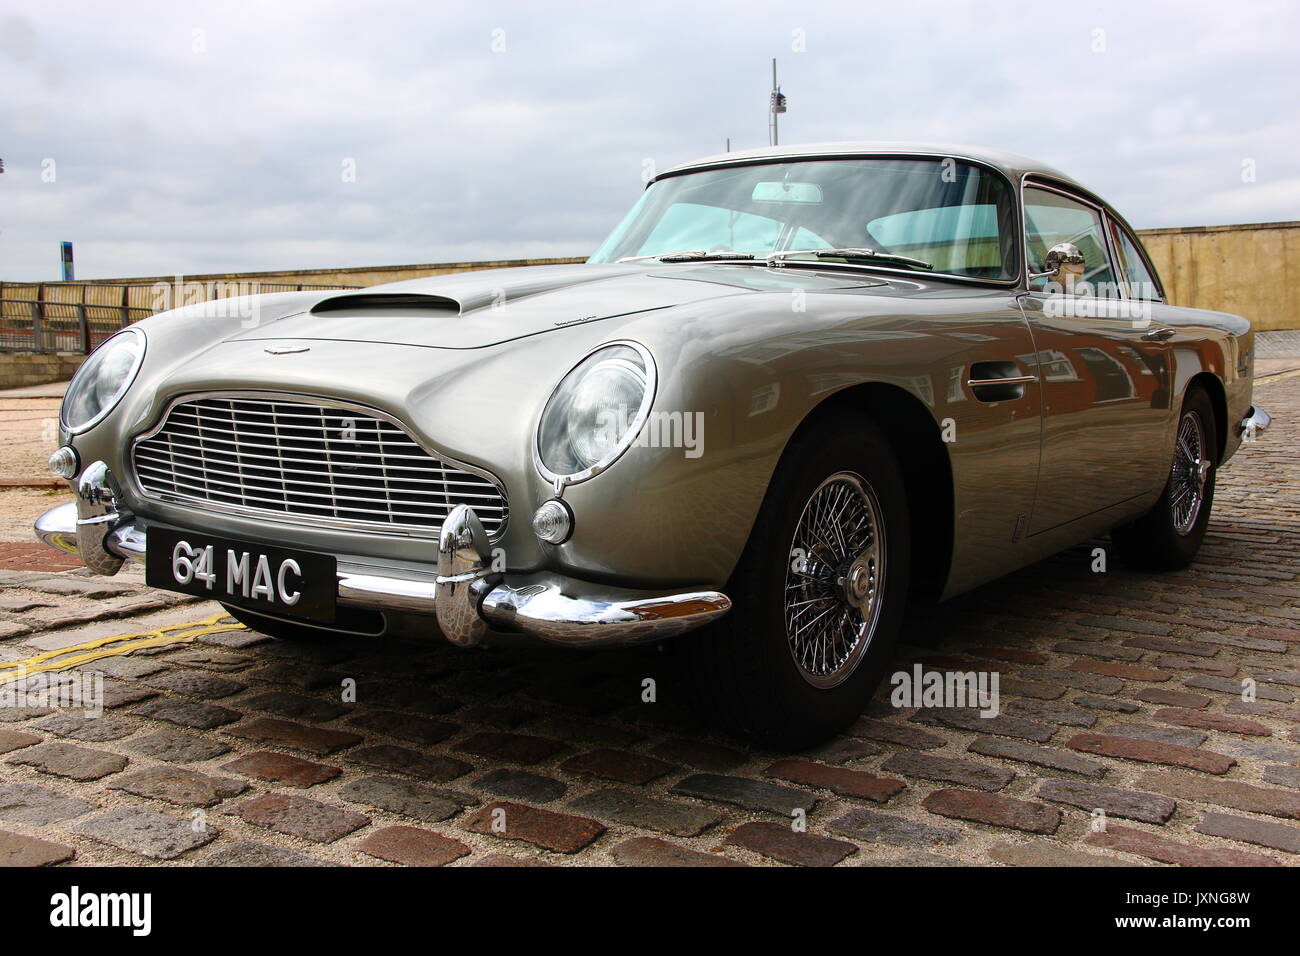 Classic Cars And Camper Vans Including An Aston Martin Db5 First Stock Photo Alamy